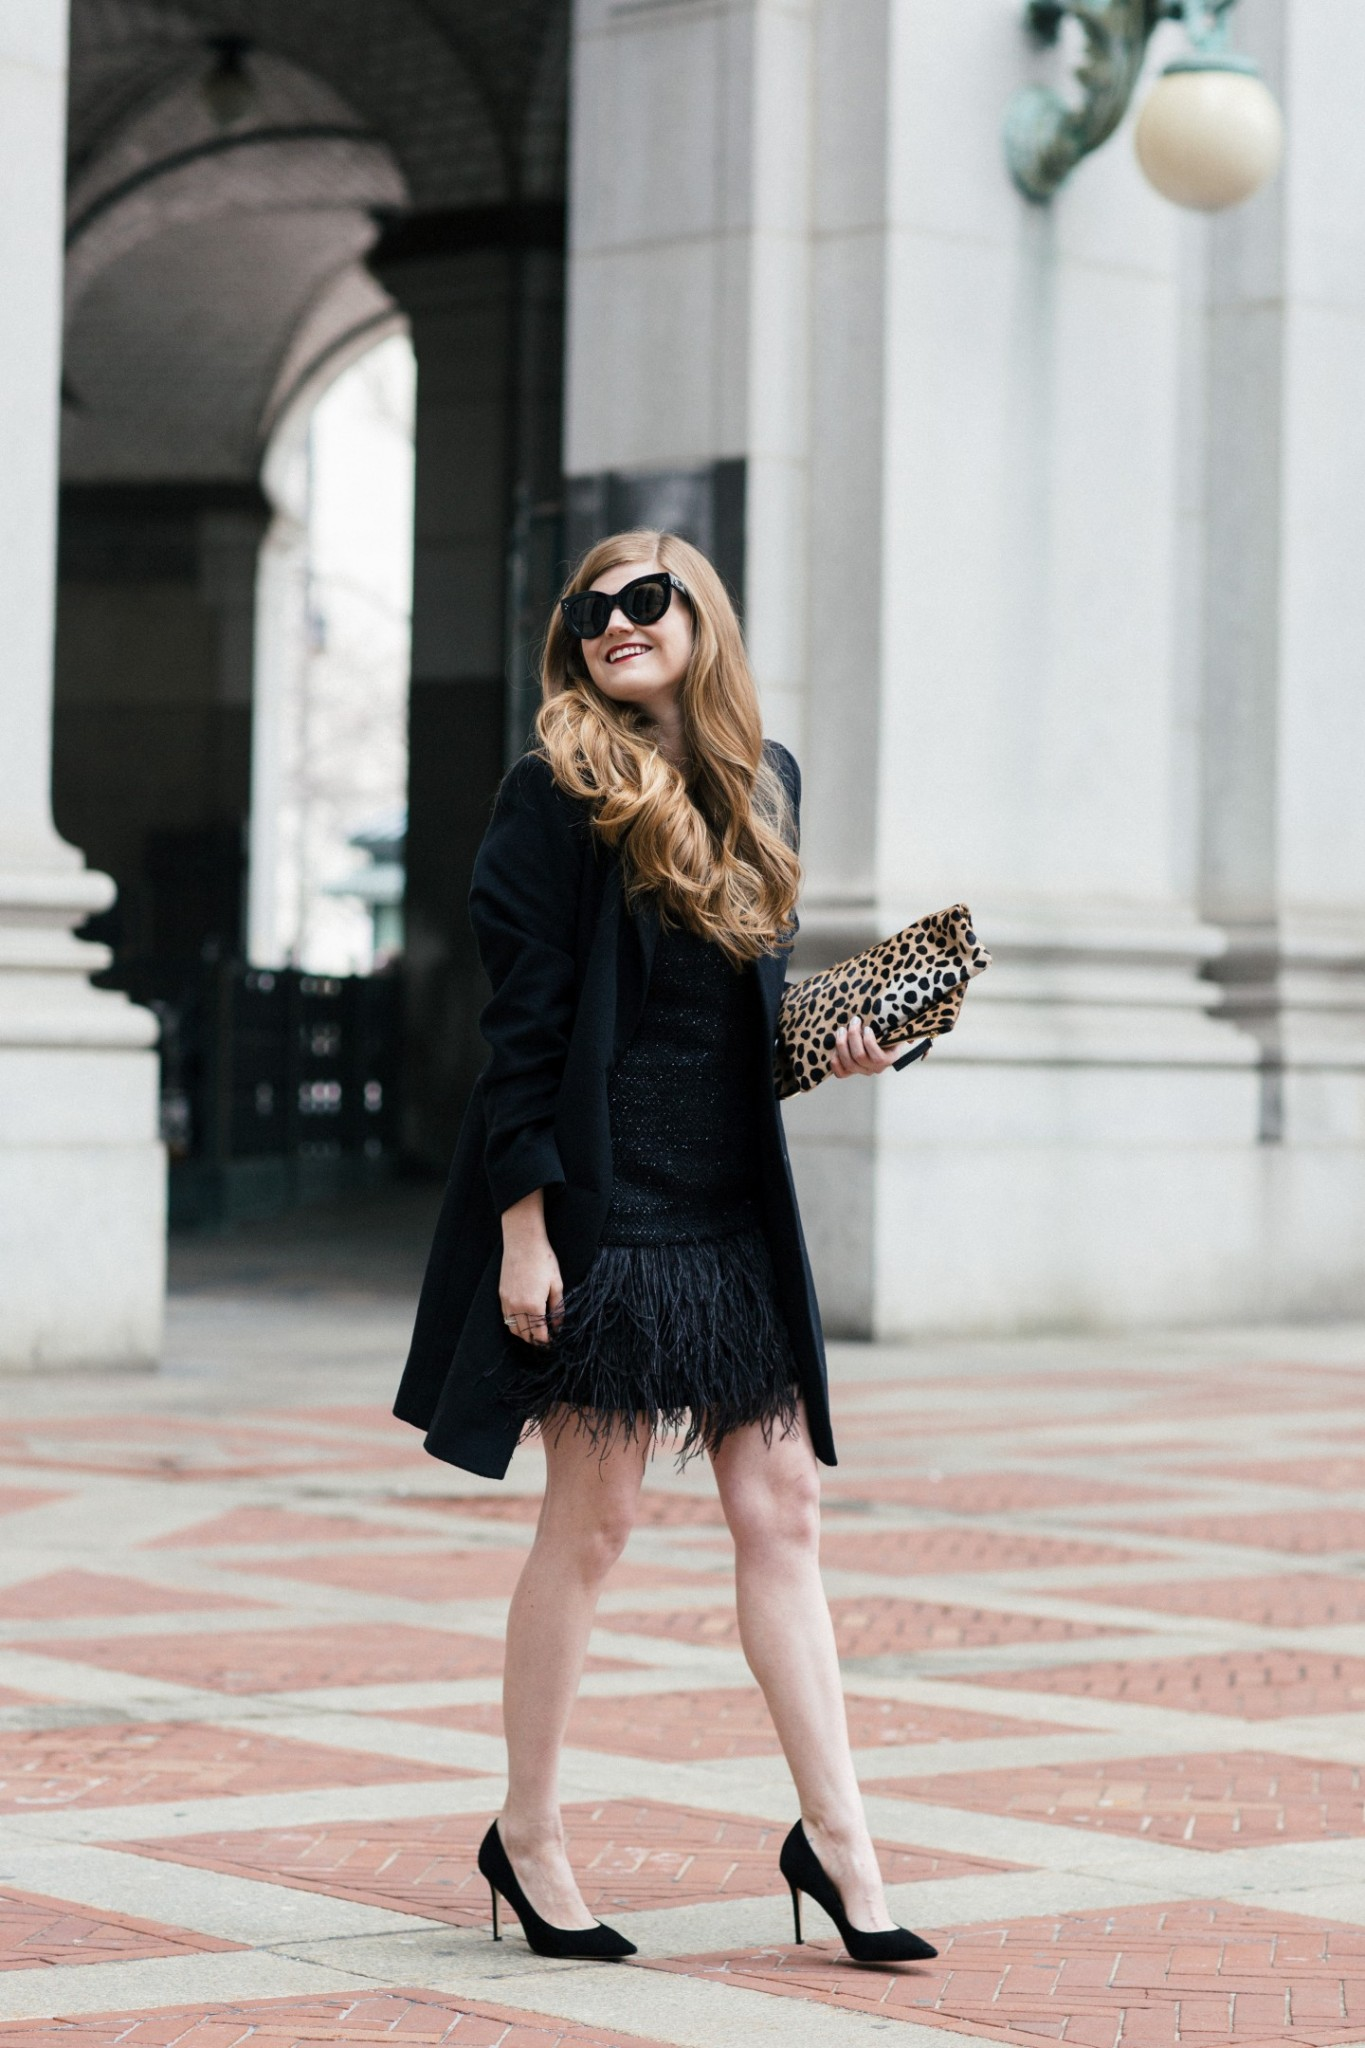 Lifestyle blogger Mollie Sheperdson shares a fun and feathery New Years Eve outfit